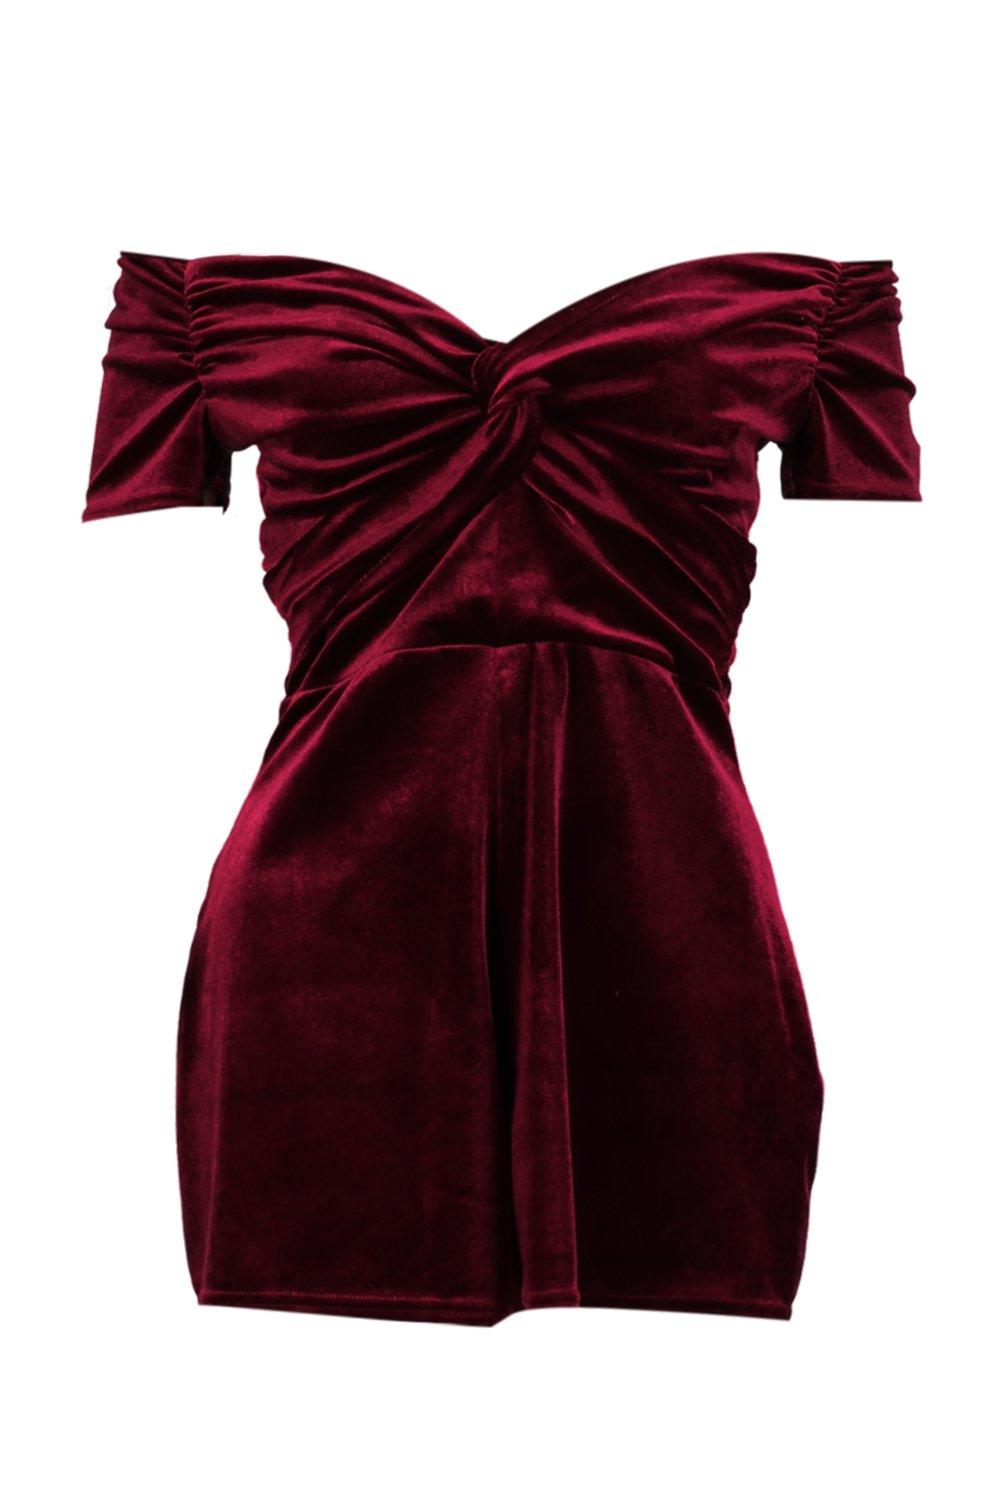 Playsuit The Off The Shoulder wine Off cYw1wgqB8